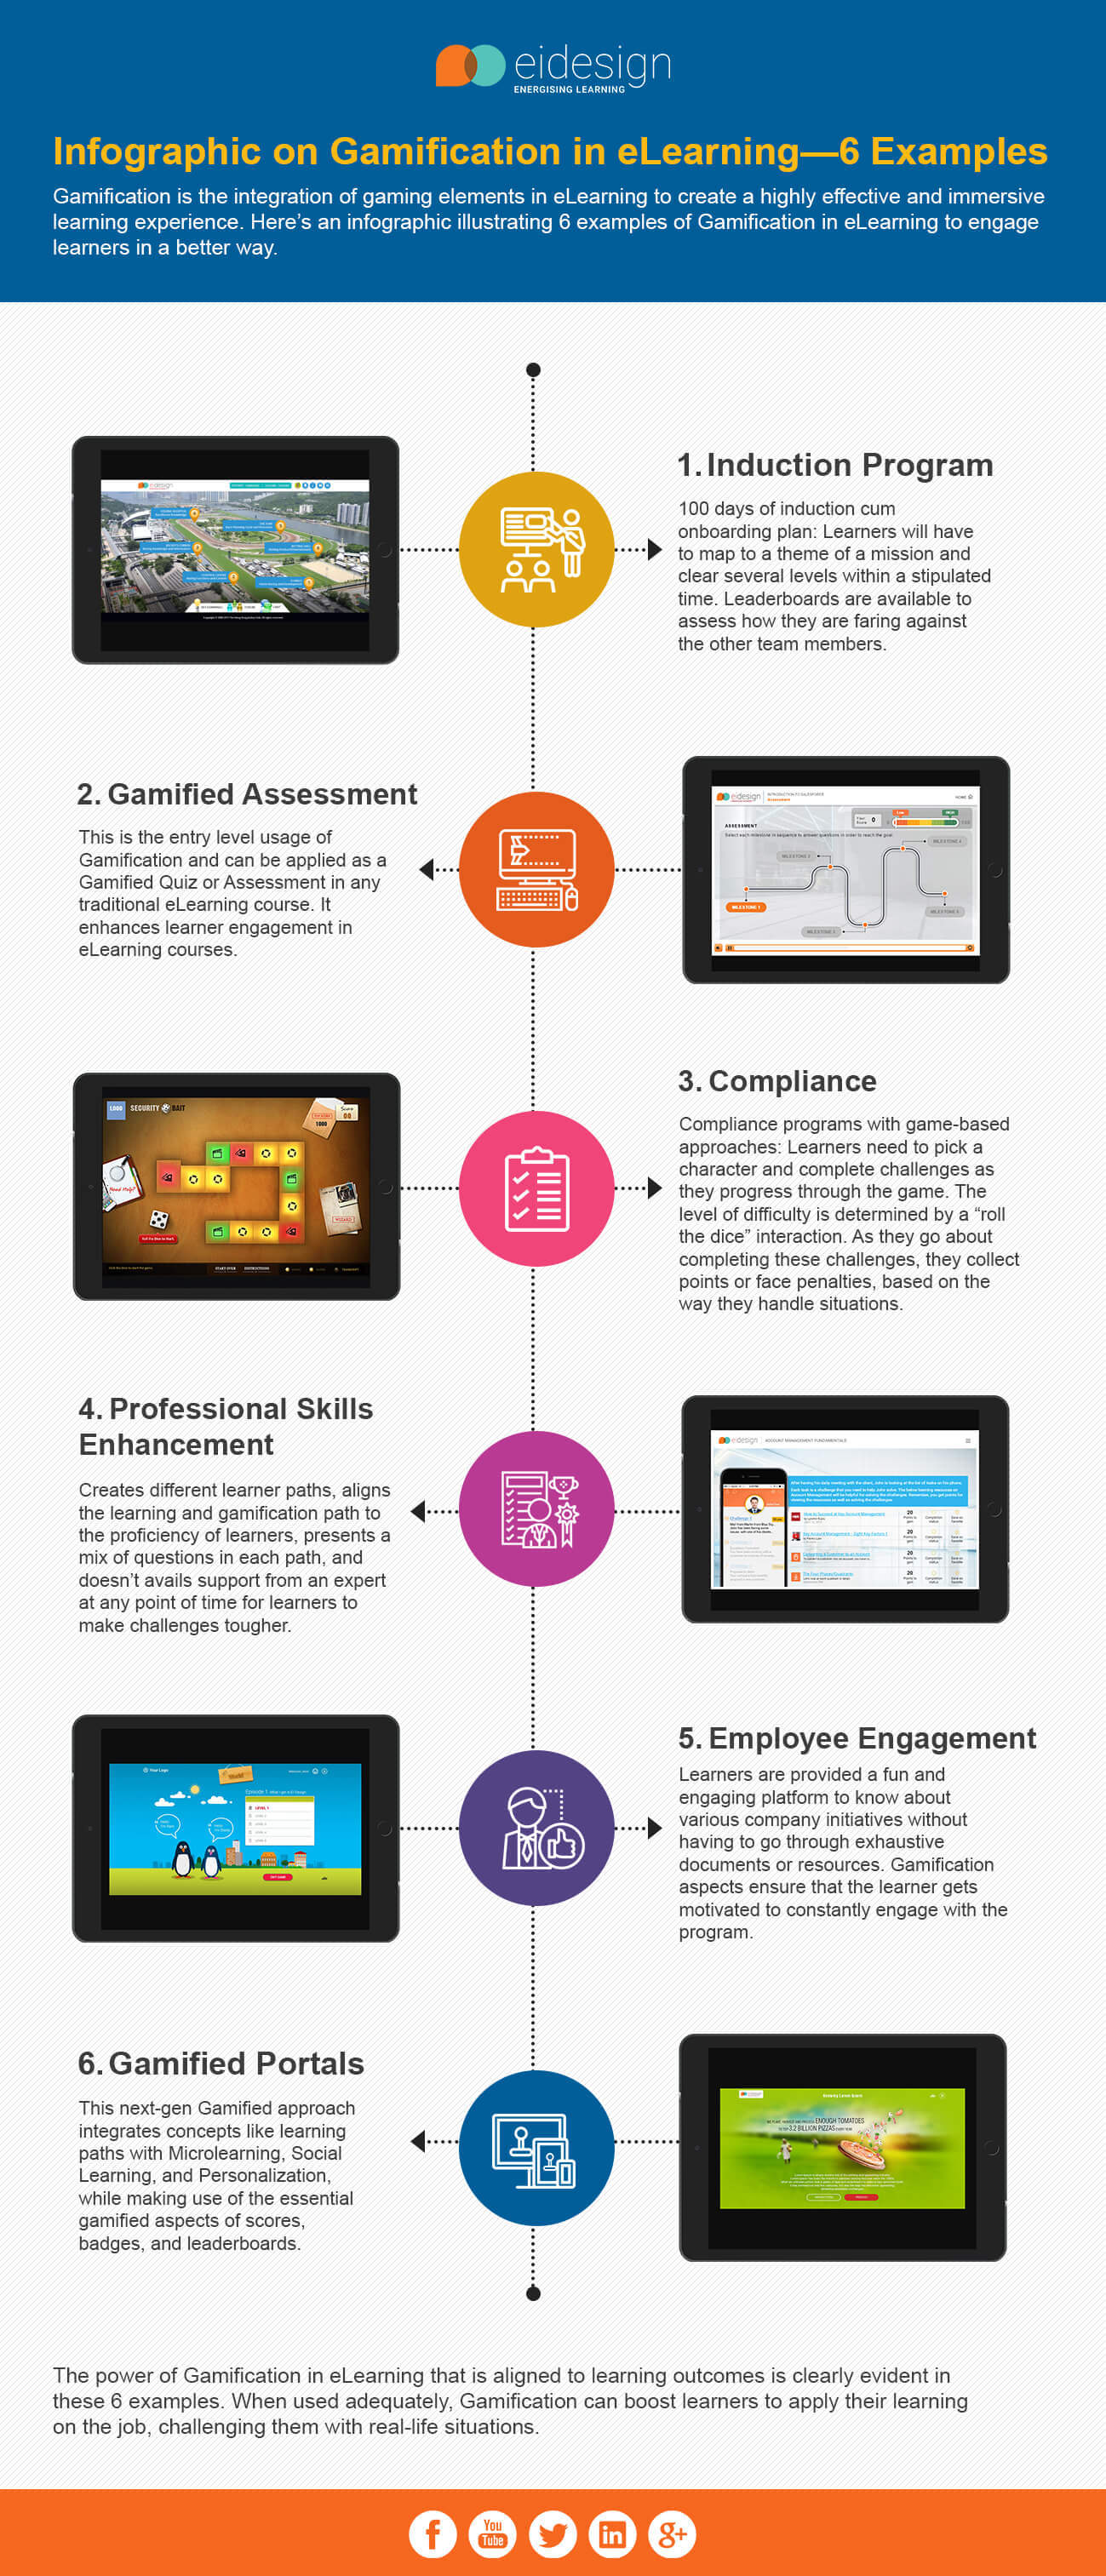 Infographic On Gamification In eLearning: 6 Examples